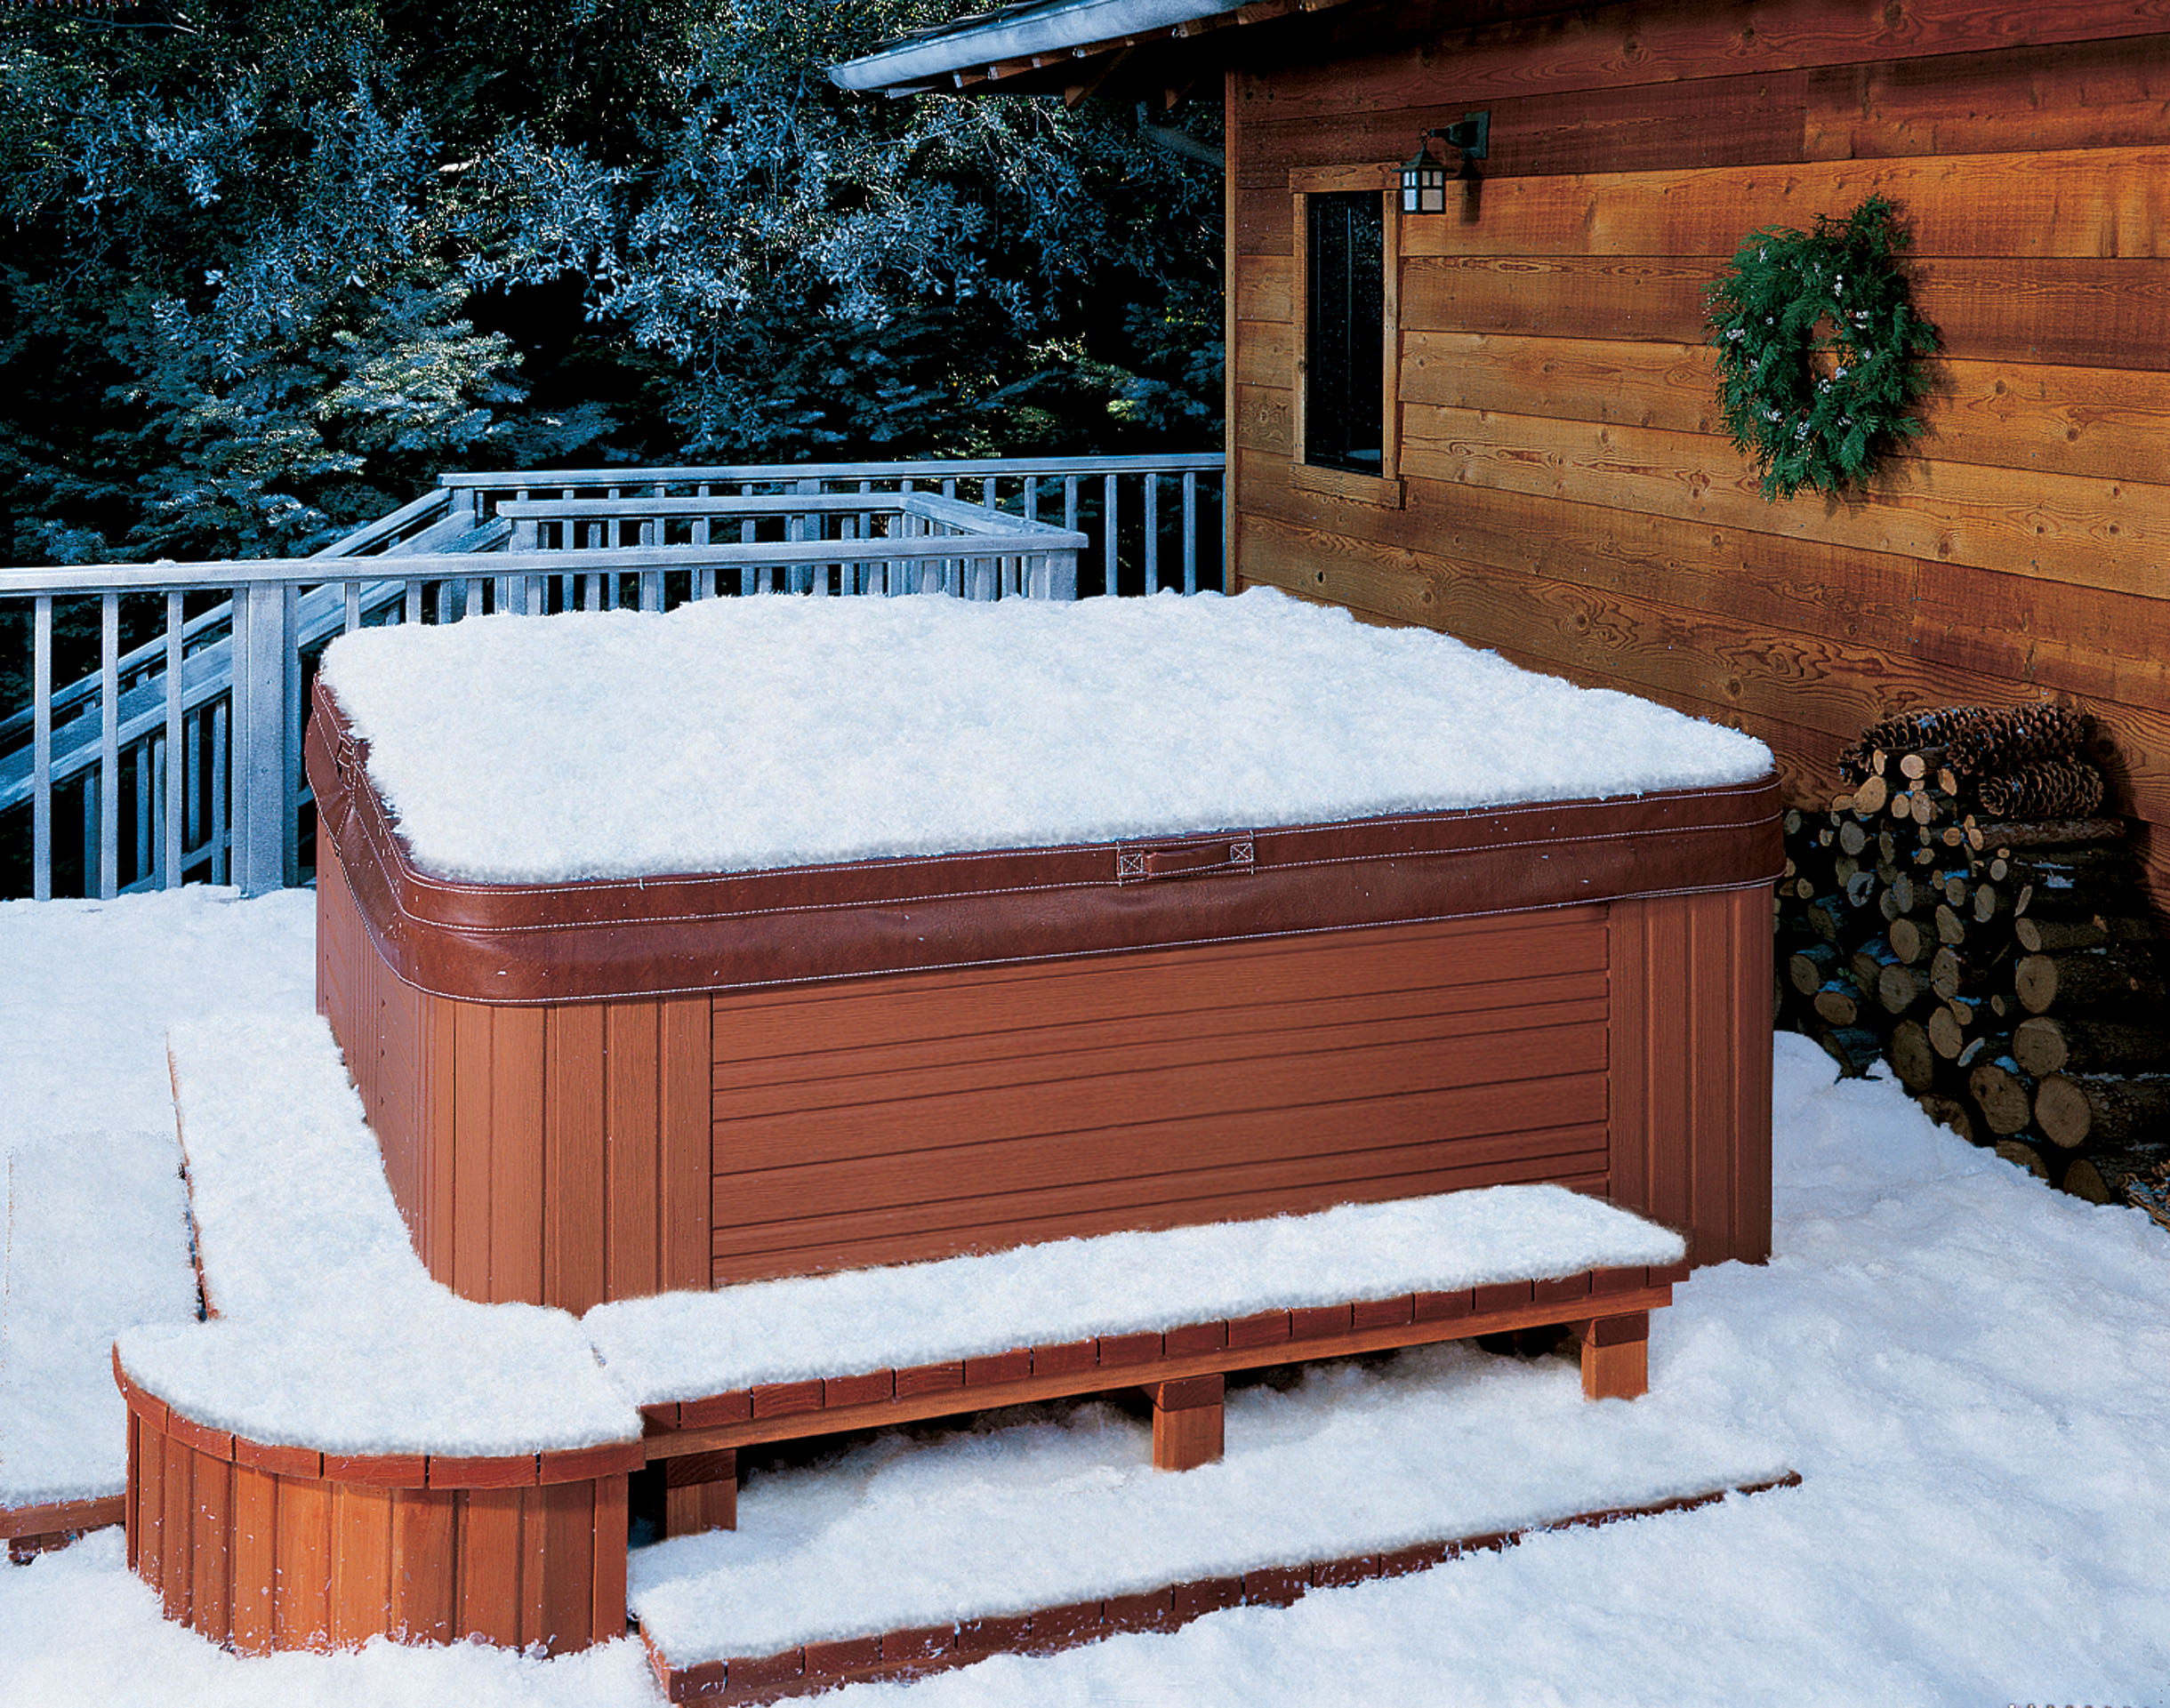 snow day spa day buddy pool and spas. Black Bedroom Furniture Sets. Home Design Ideas